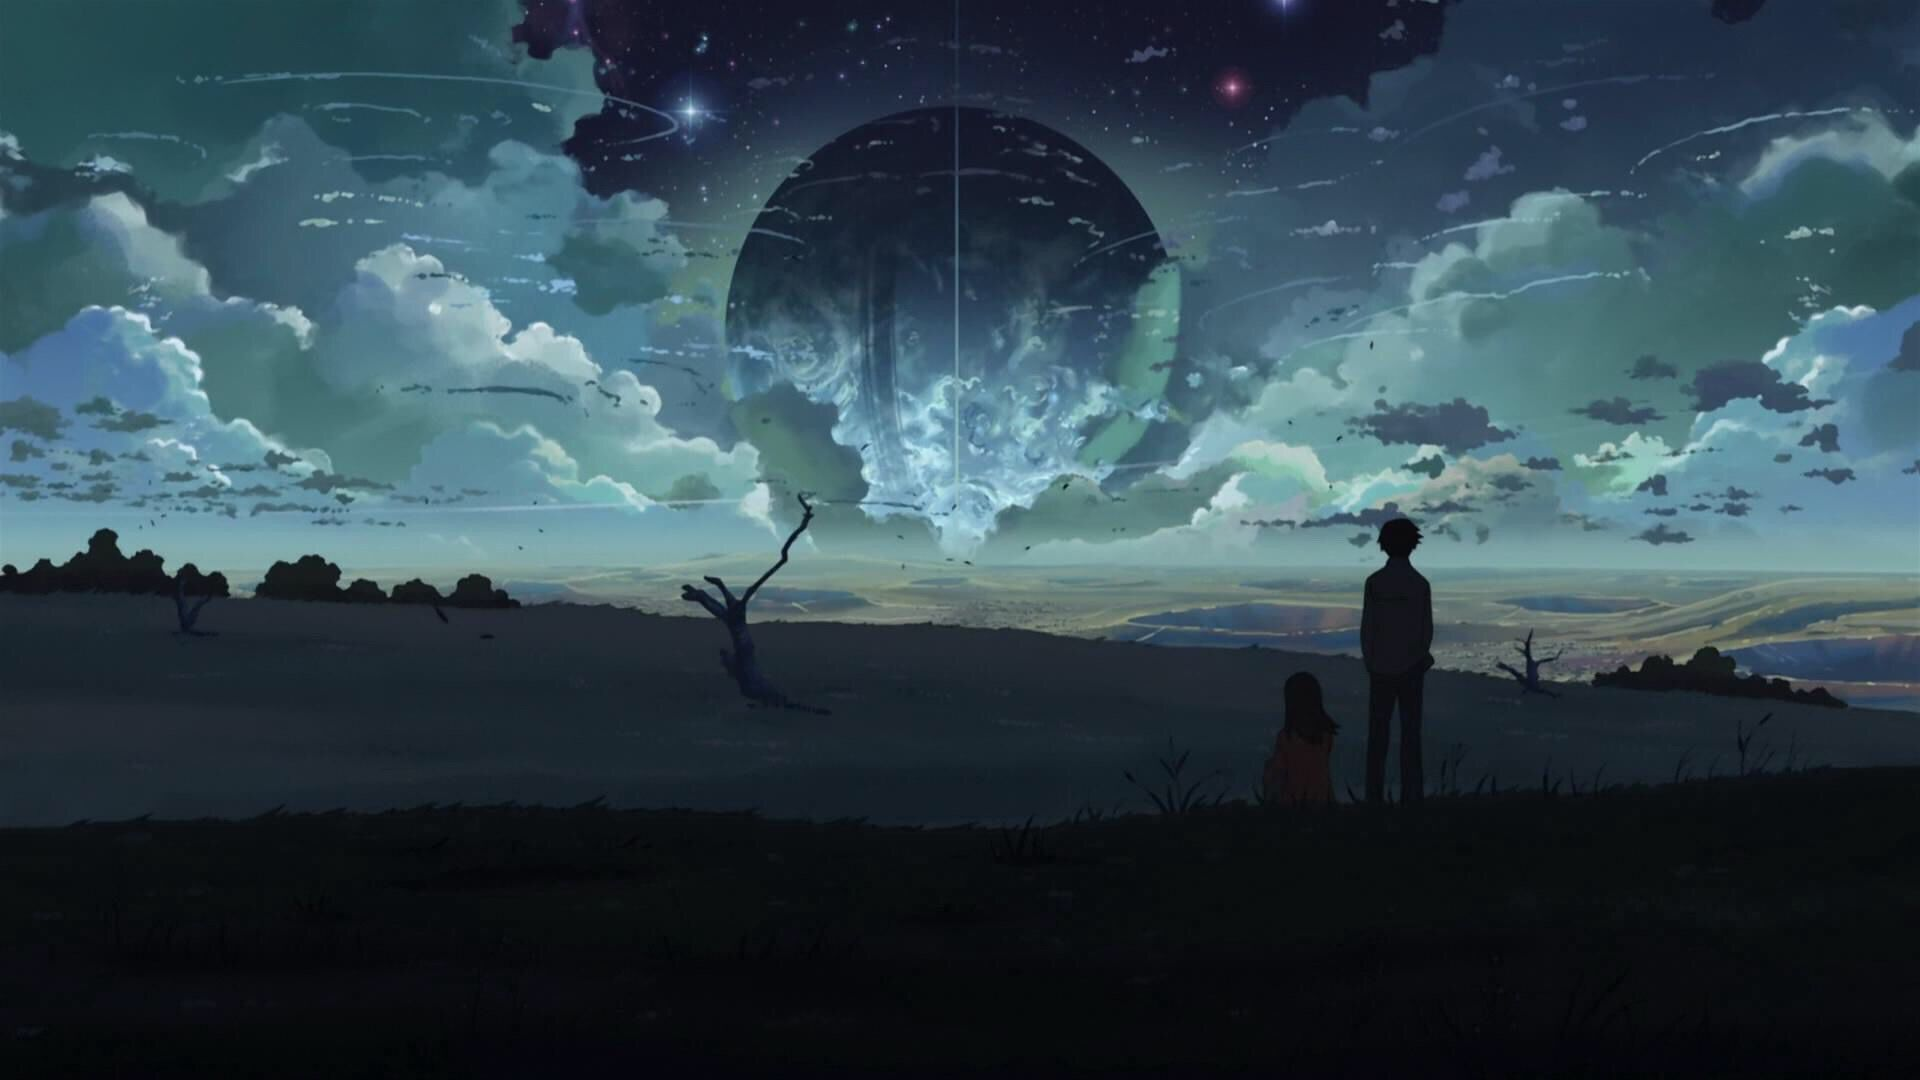 Future Anime Wallpapers Top Free Future Anime Backgrounds Wallpaperaccess